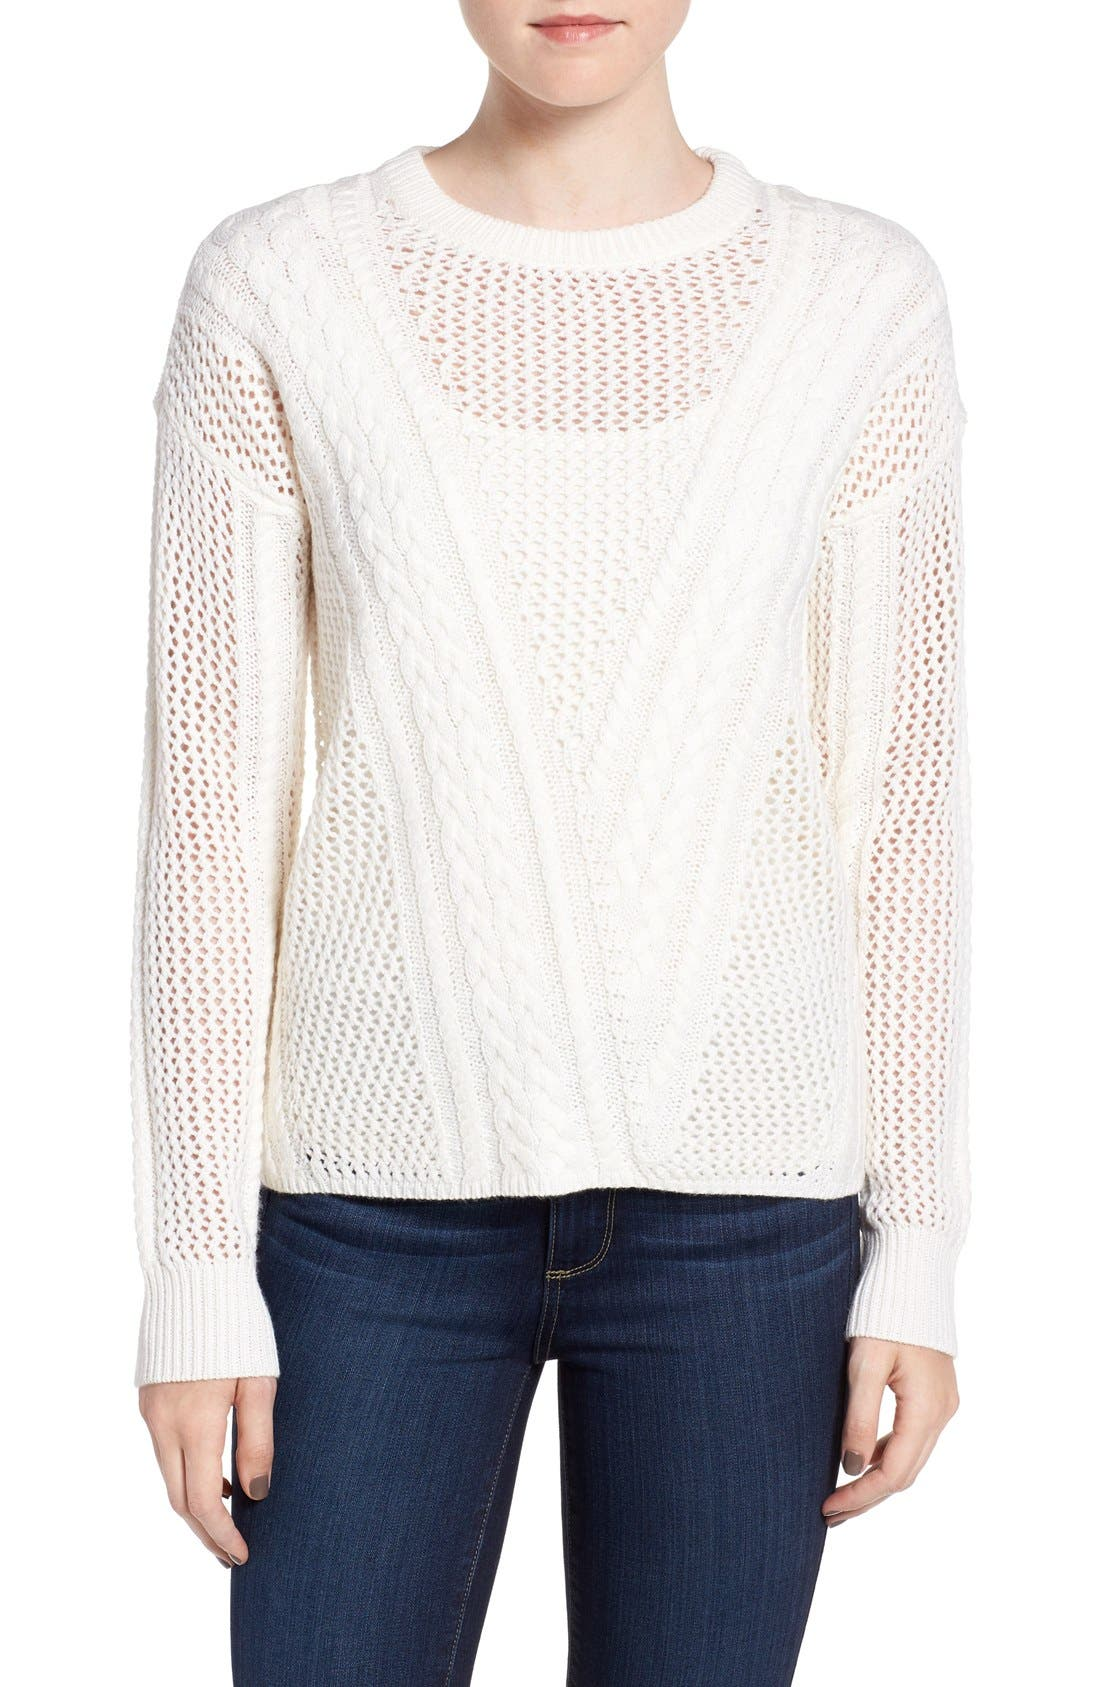 Amory Open Knit Sweater,                             Main thumbnail 1, color,                             Ivory